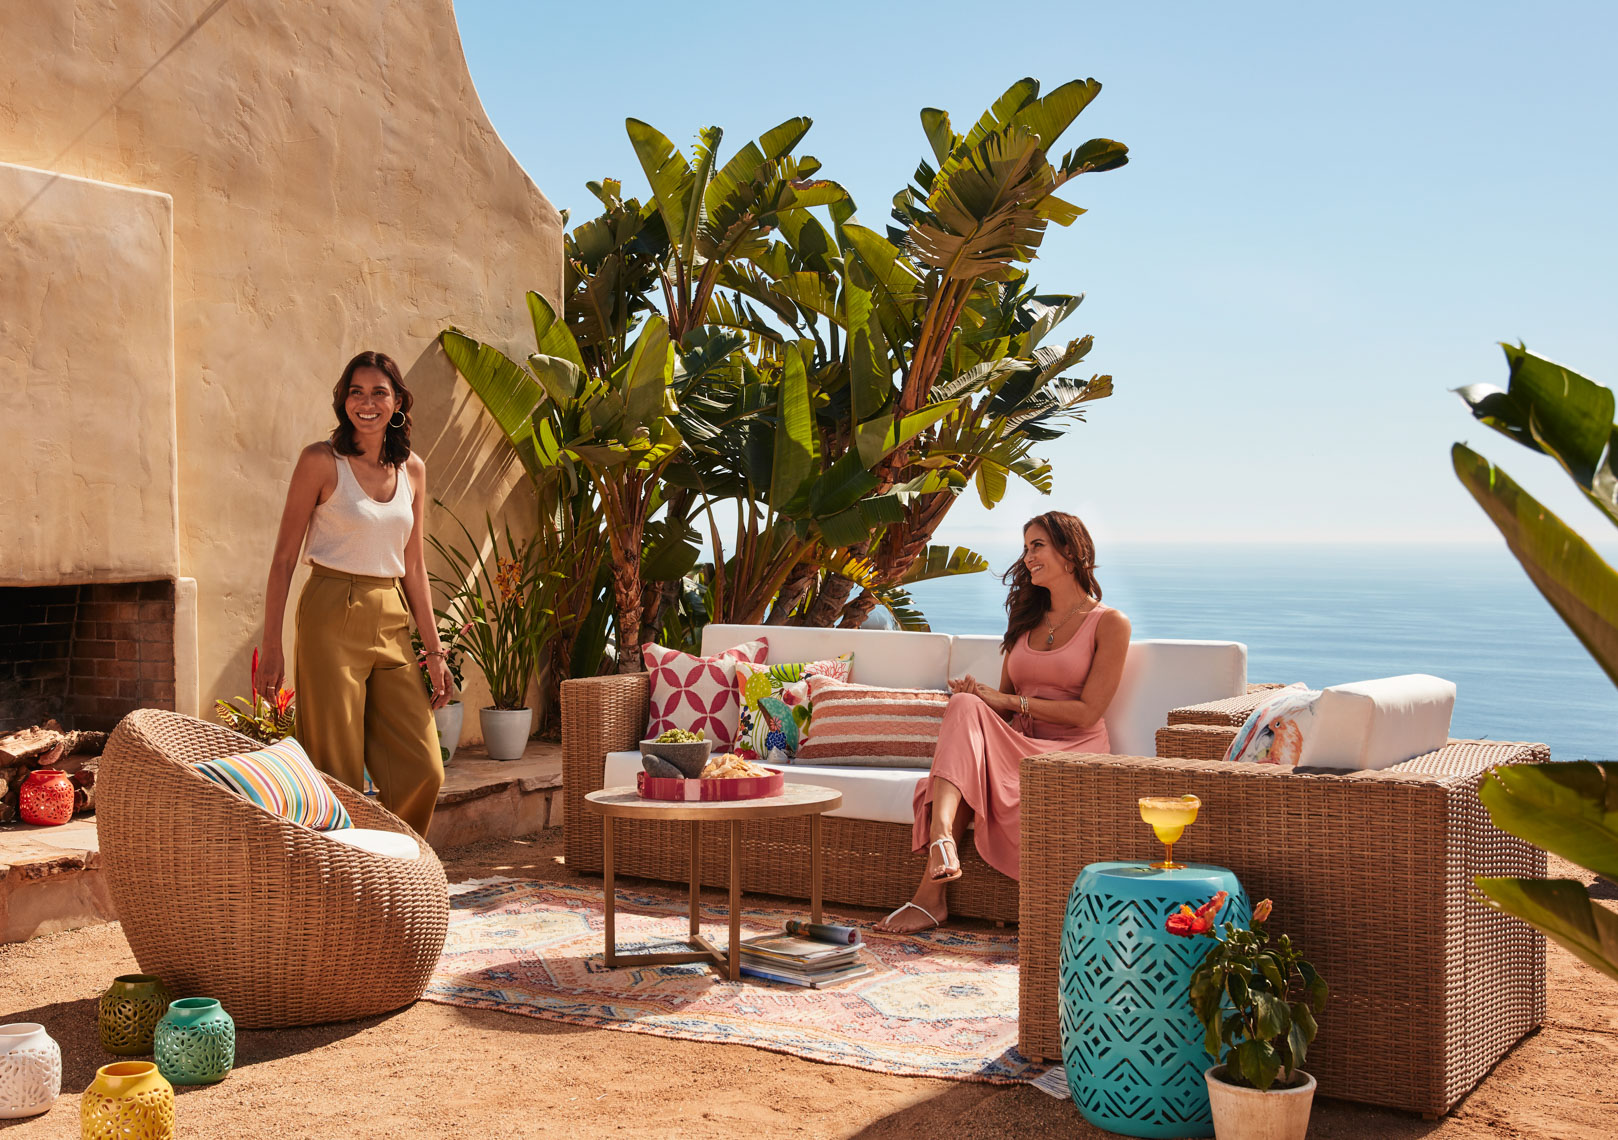 Two women at outdoor seating with wicker furniture and white cushions and rug in the sun overlooking the ocean